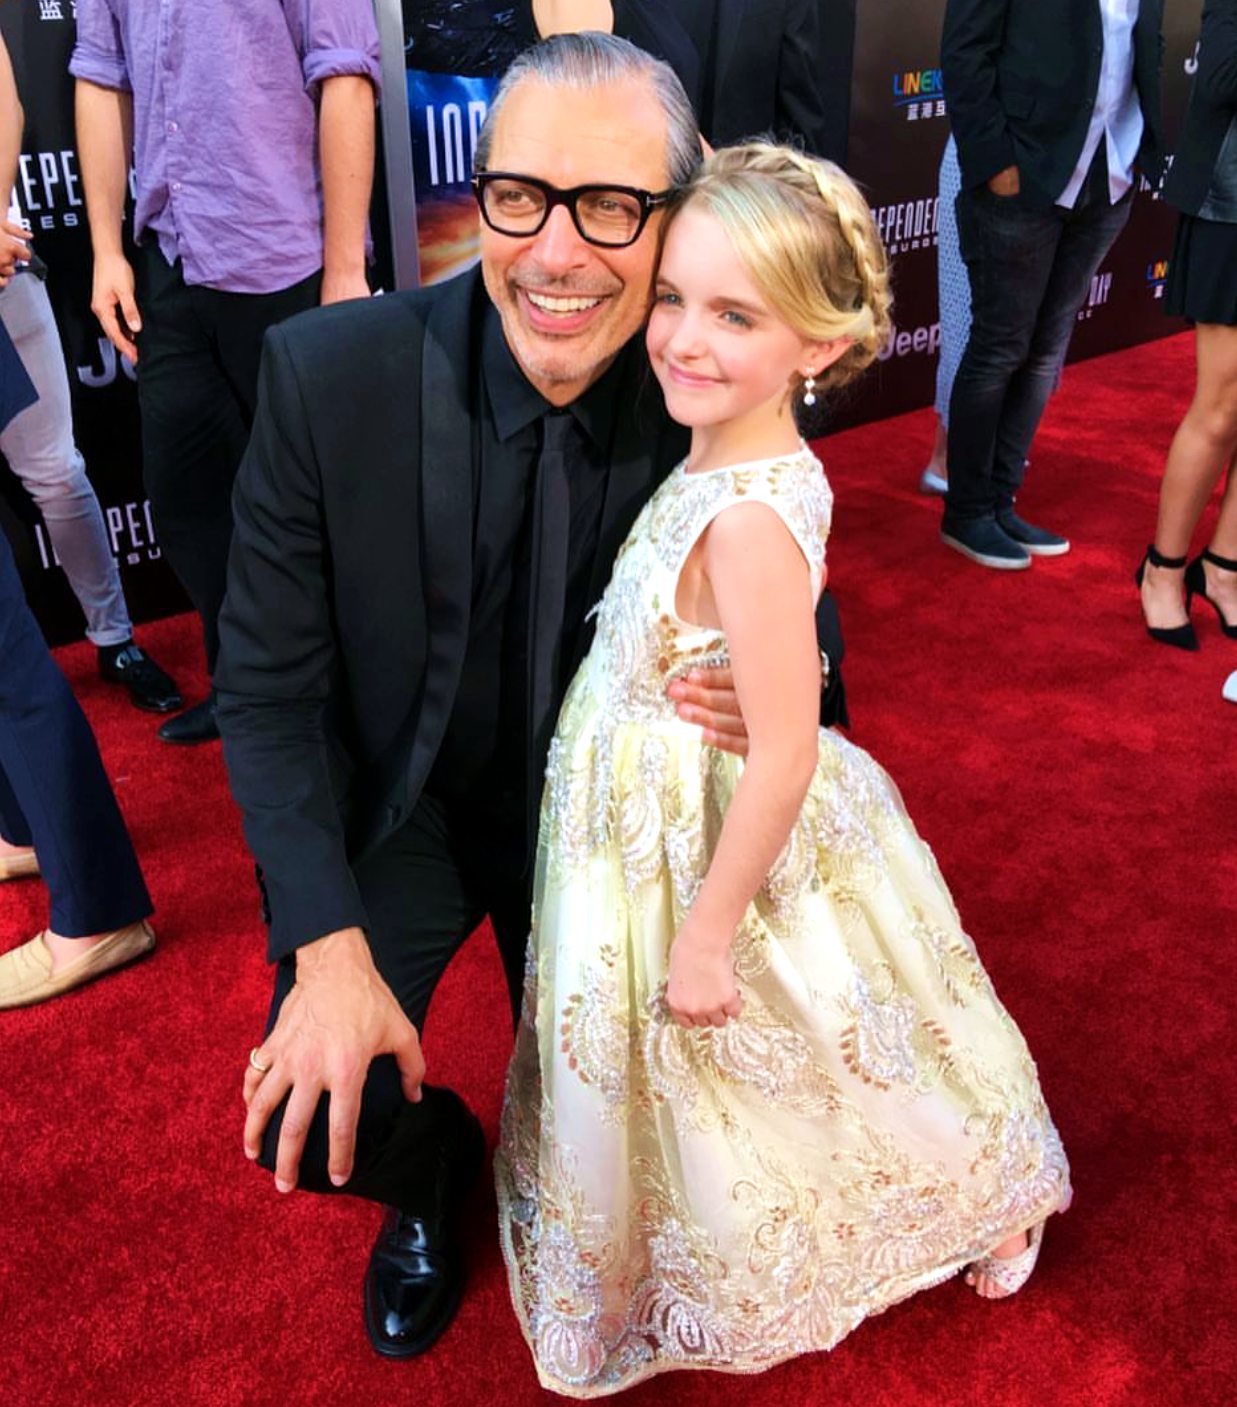 Independence Day Resurgence, movie premiere, Jeff Goldblum